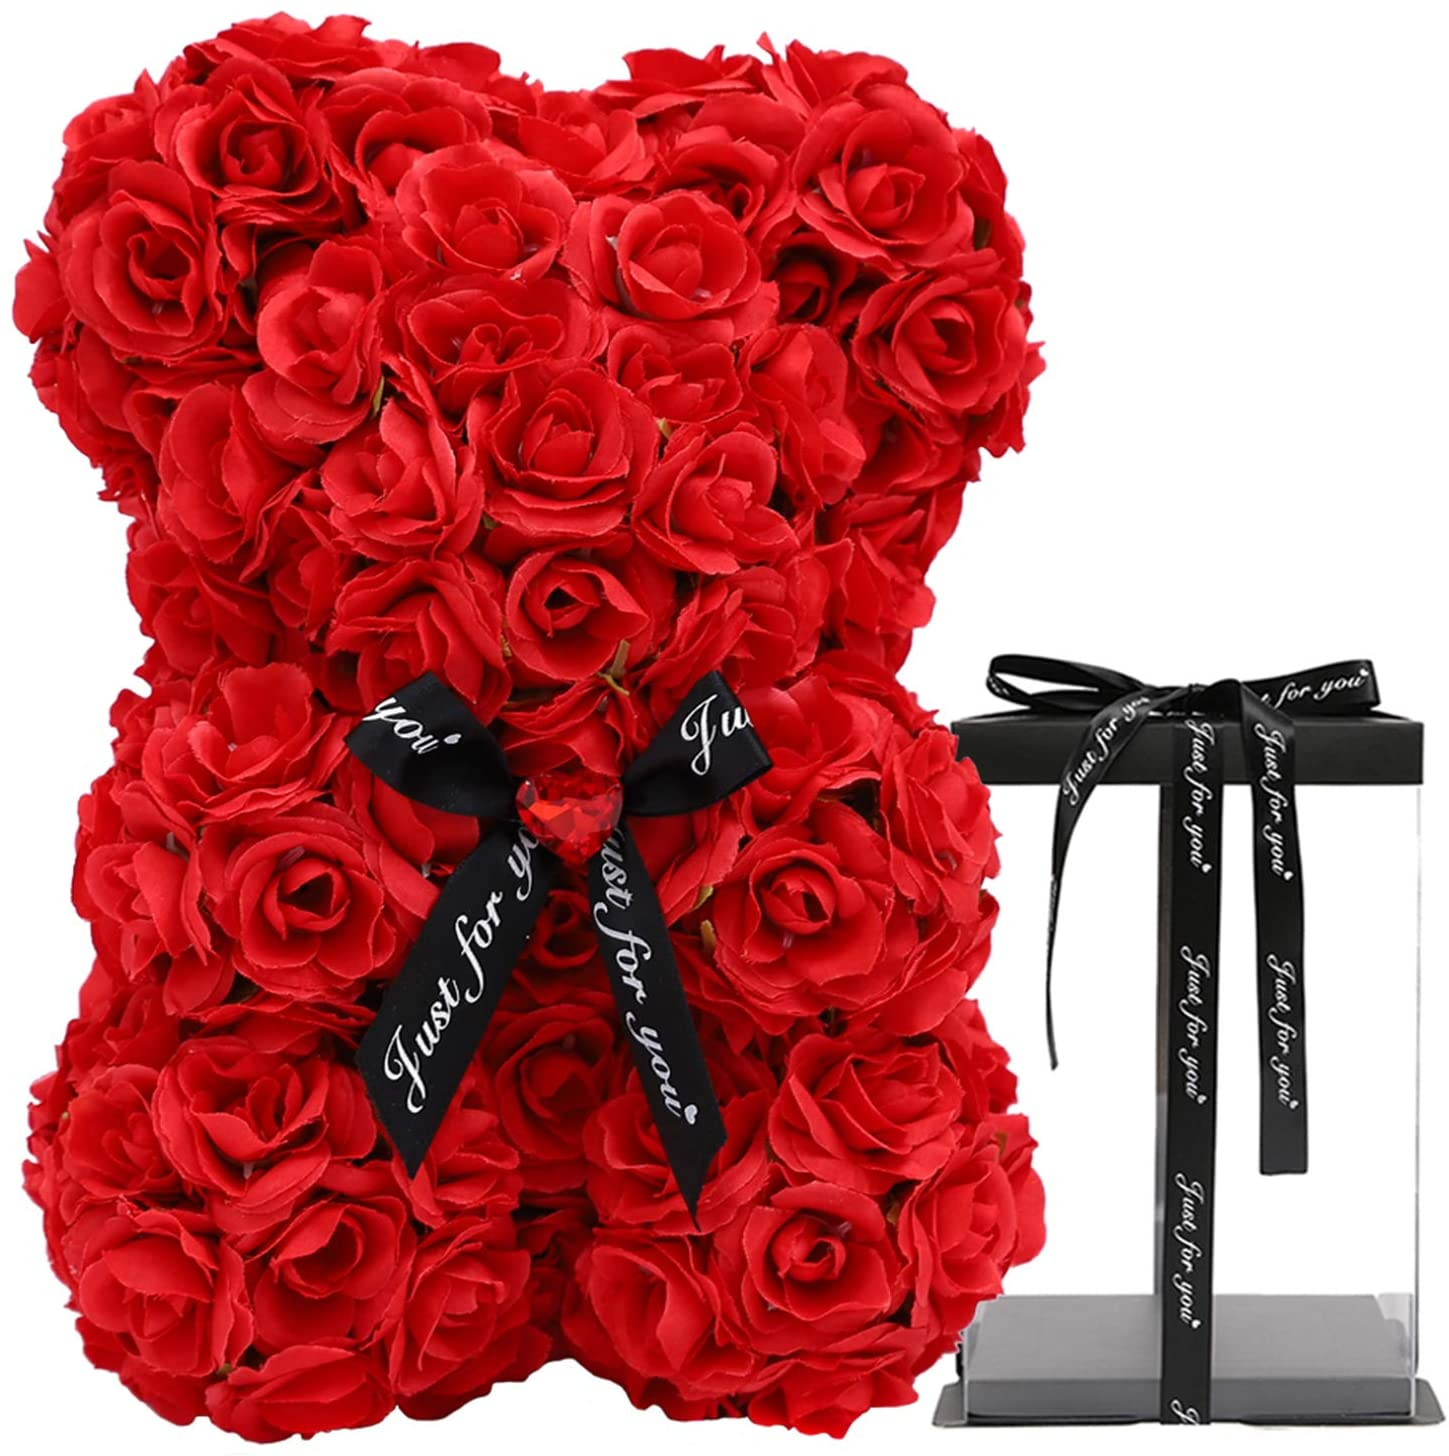 POETIC WREATH Rose Bear Teddy Bear Flower New Silk Rose Bear Rose Teddy Bear 10 inch Suitable for Valentines Day, Anniversary, Mothers Day, Birthday Gifts,Thanksgiving Gift(red)